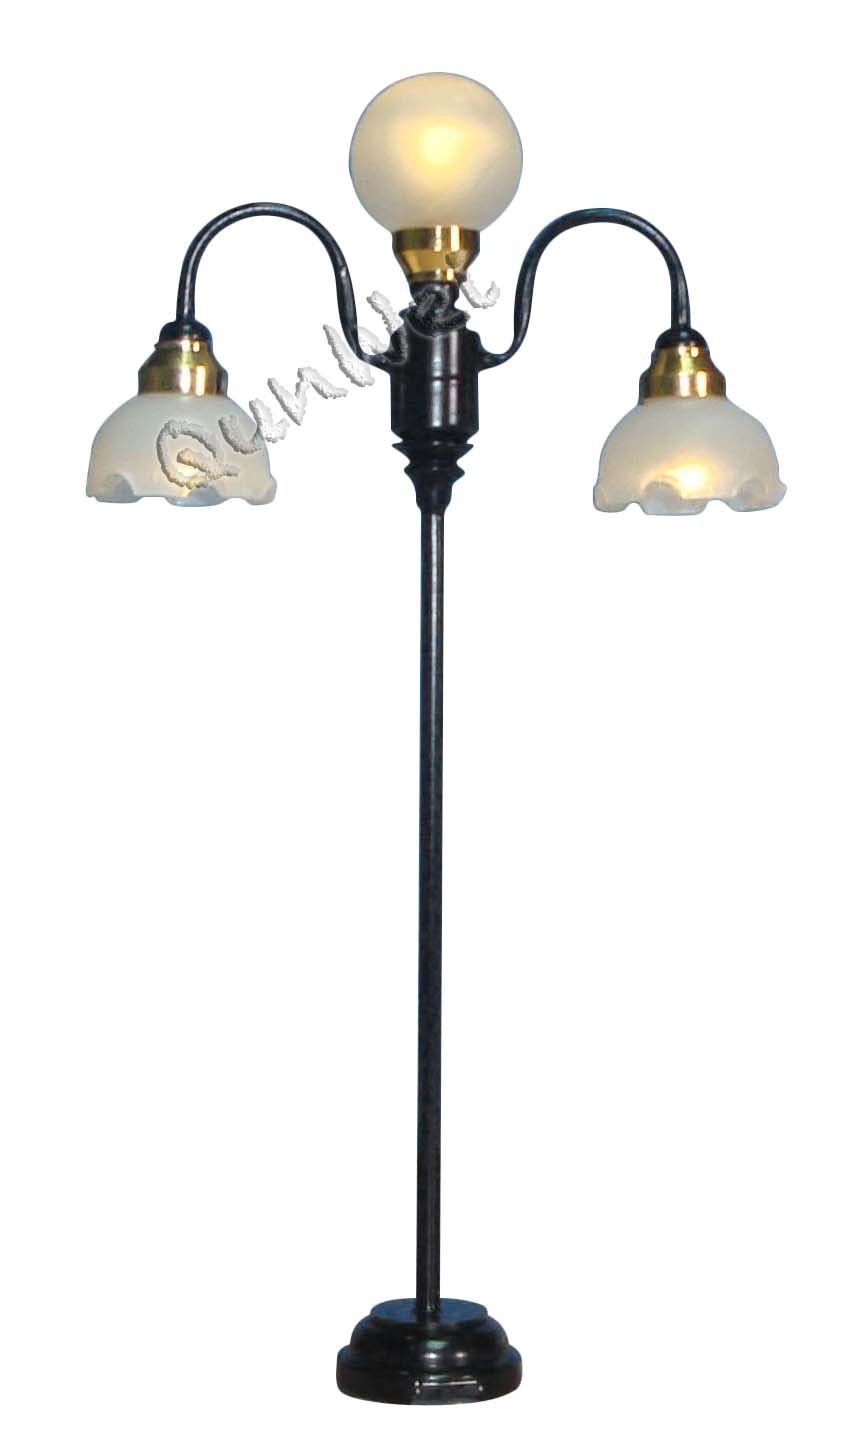 Dollhouse Street Lamp